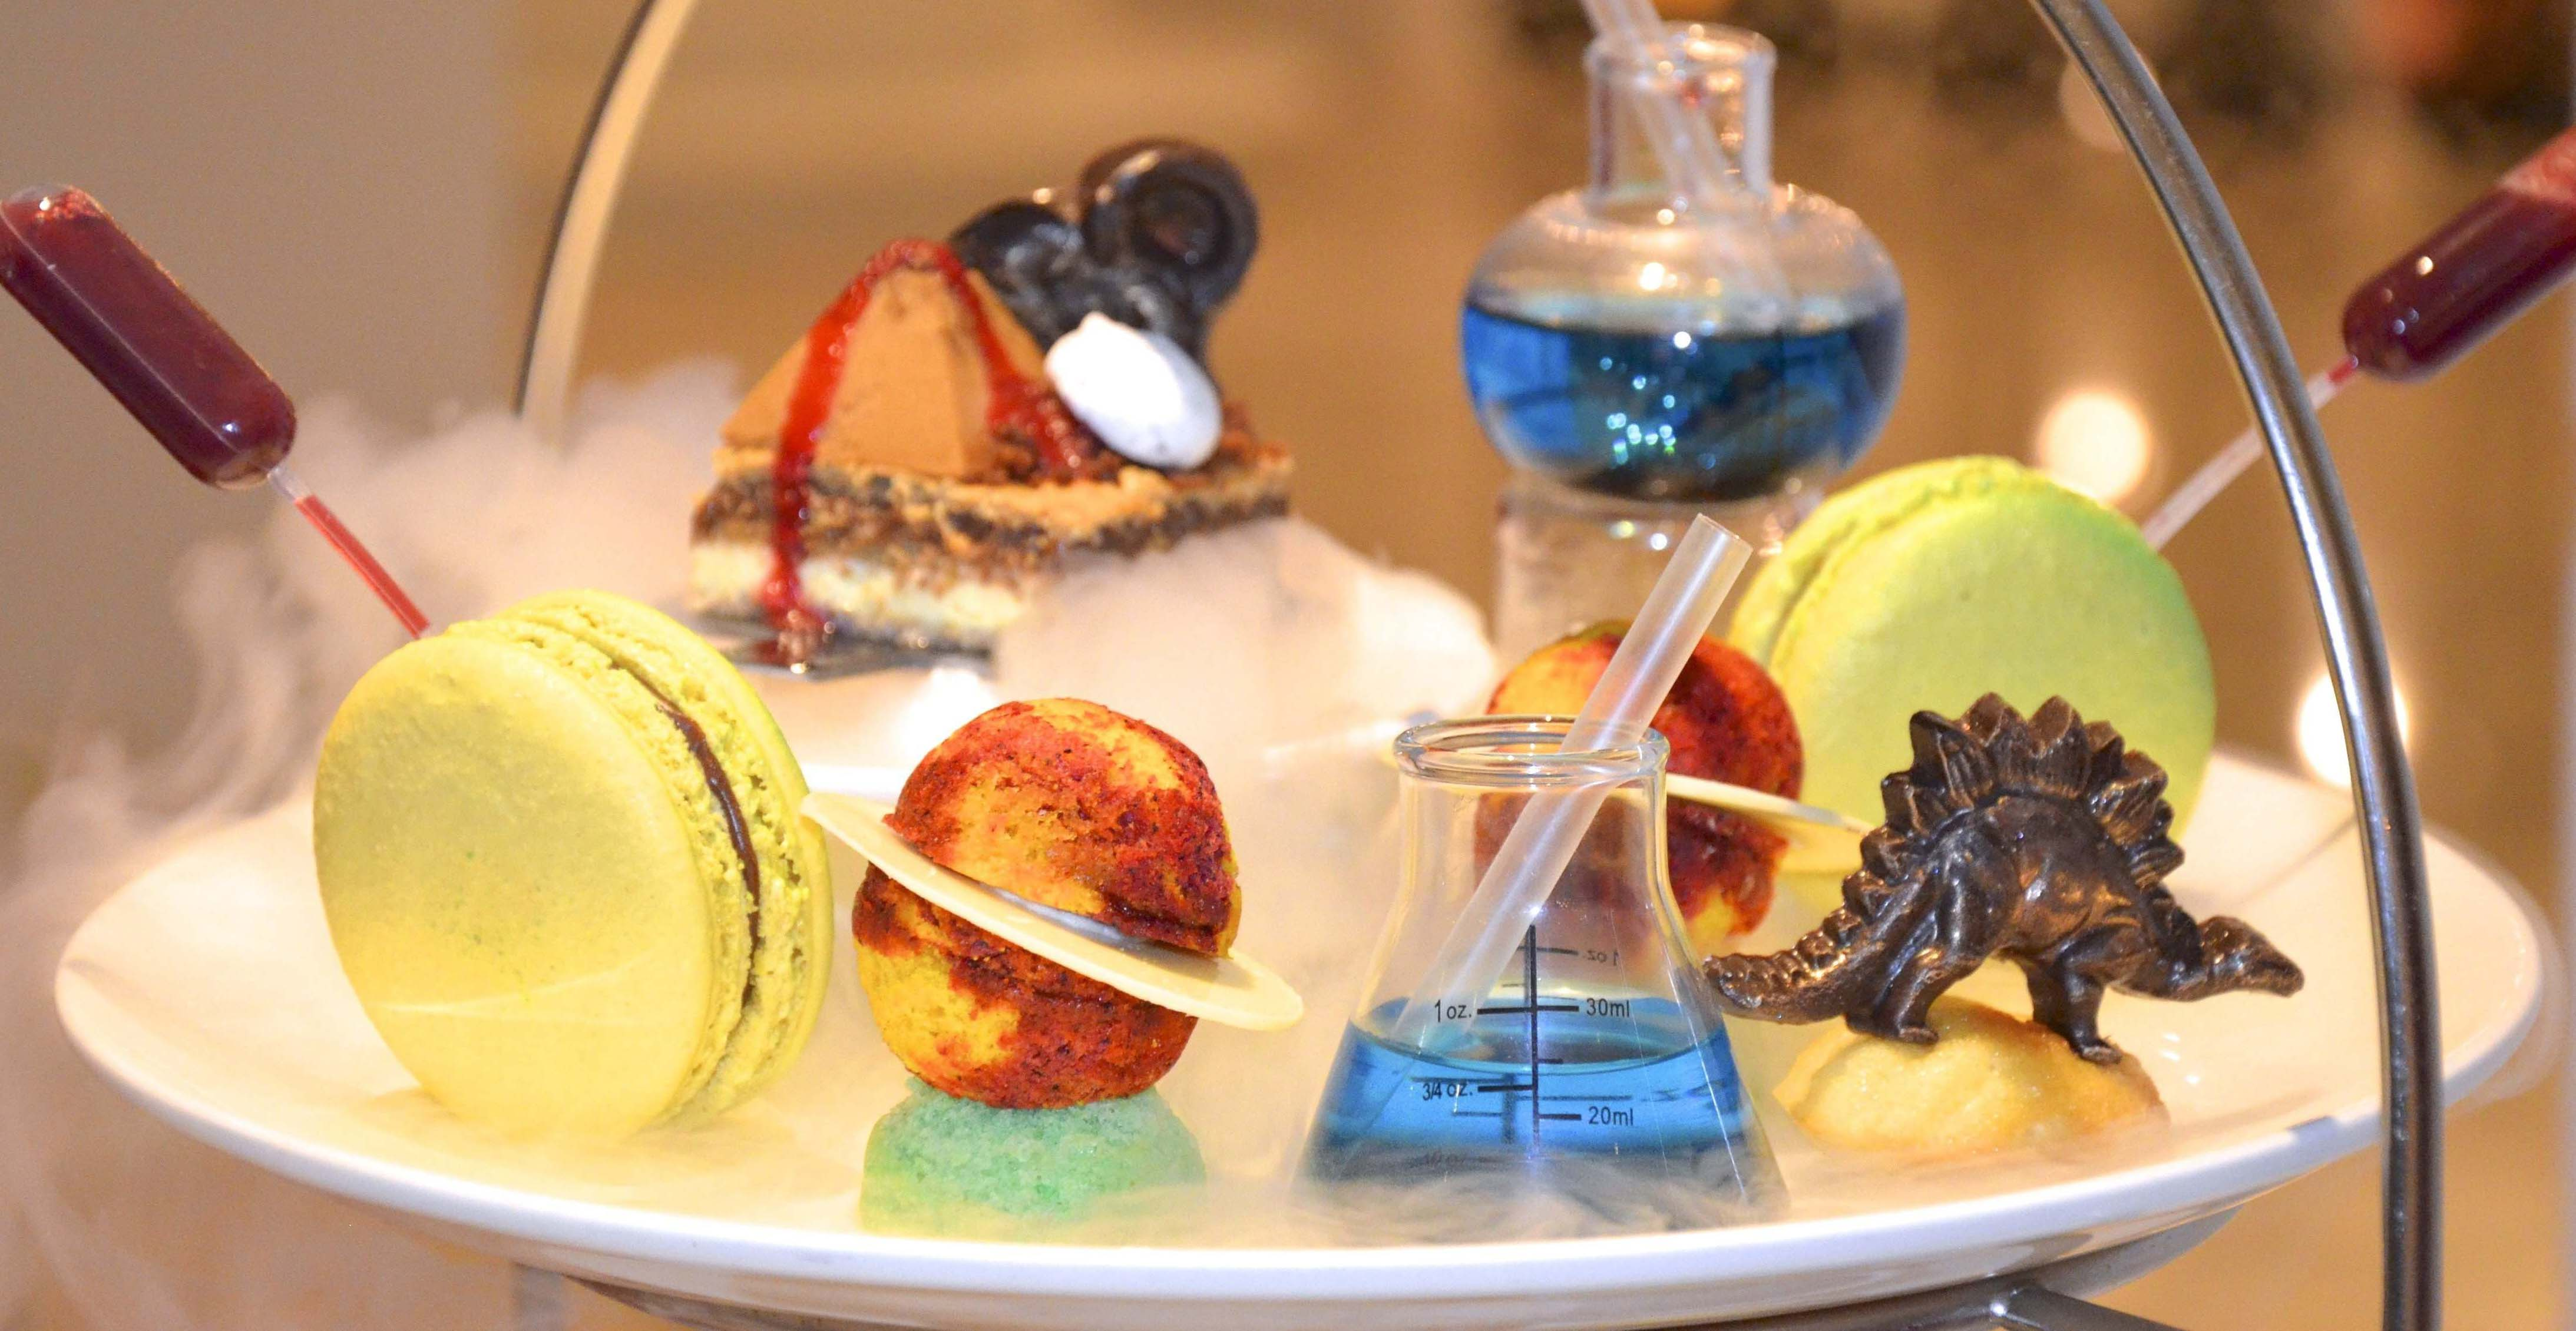 Afternoon tea review: The Ampersand Hotel, London